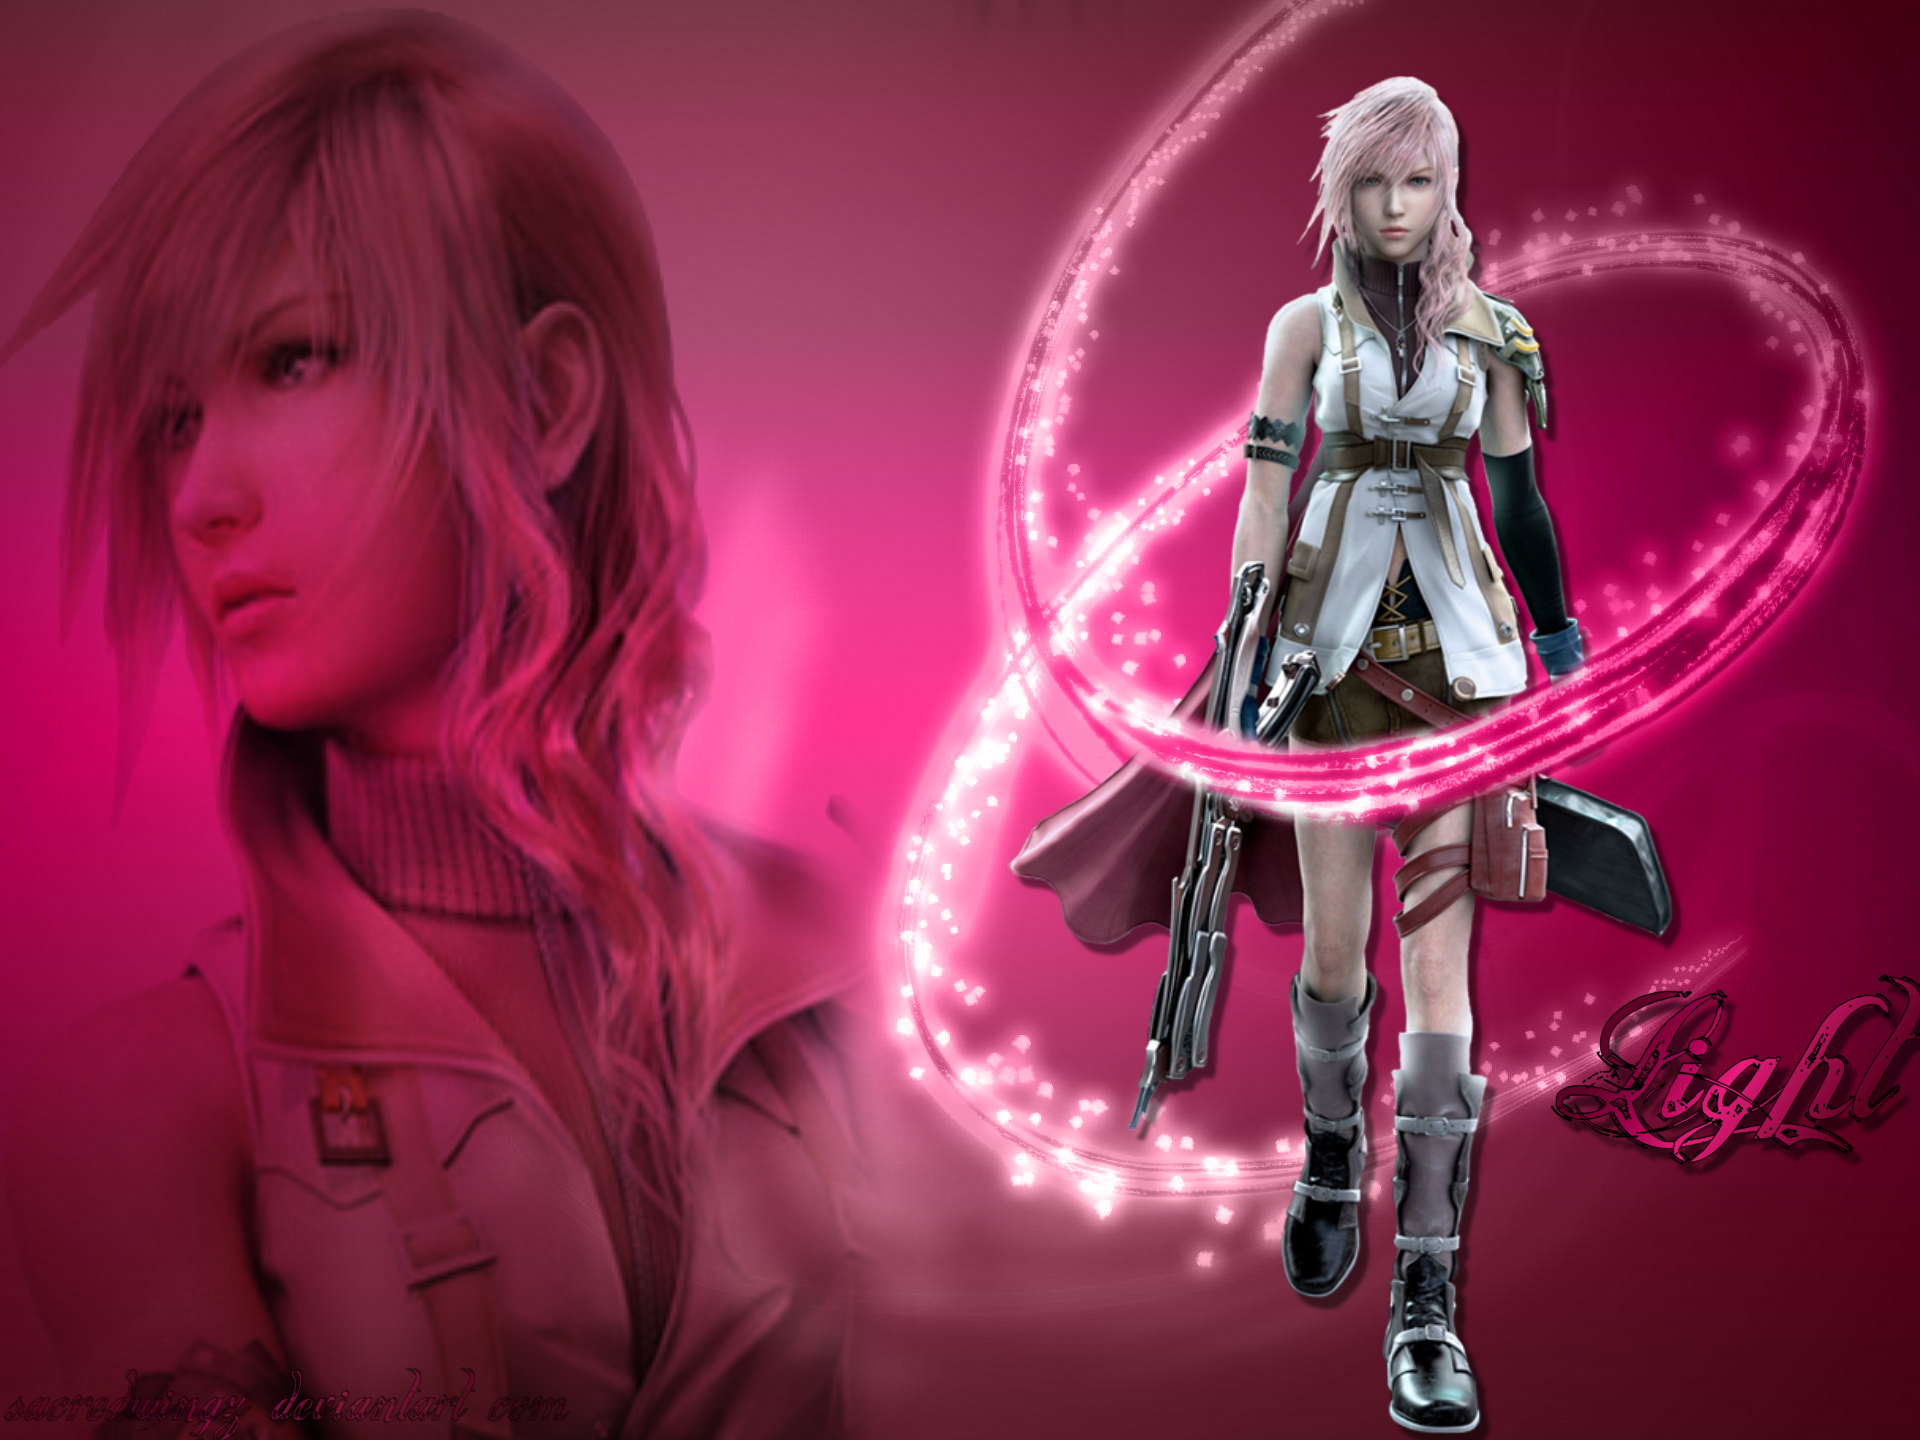 Final fantasy 13 2 lighting images lighting backgrounds hd final fantasy 13 2 lighting images lighting backgrounds hd wallpaper and background photos voltagebd Choice Image